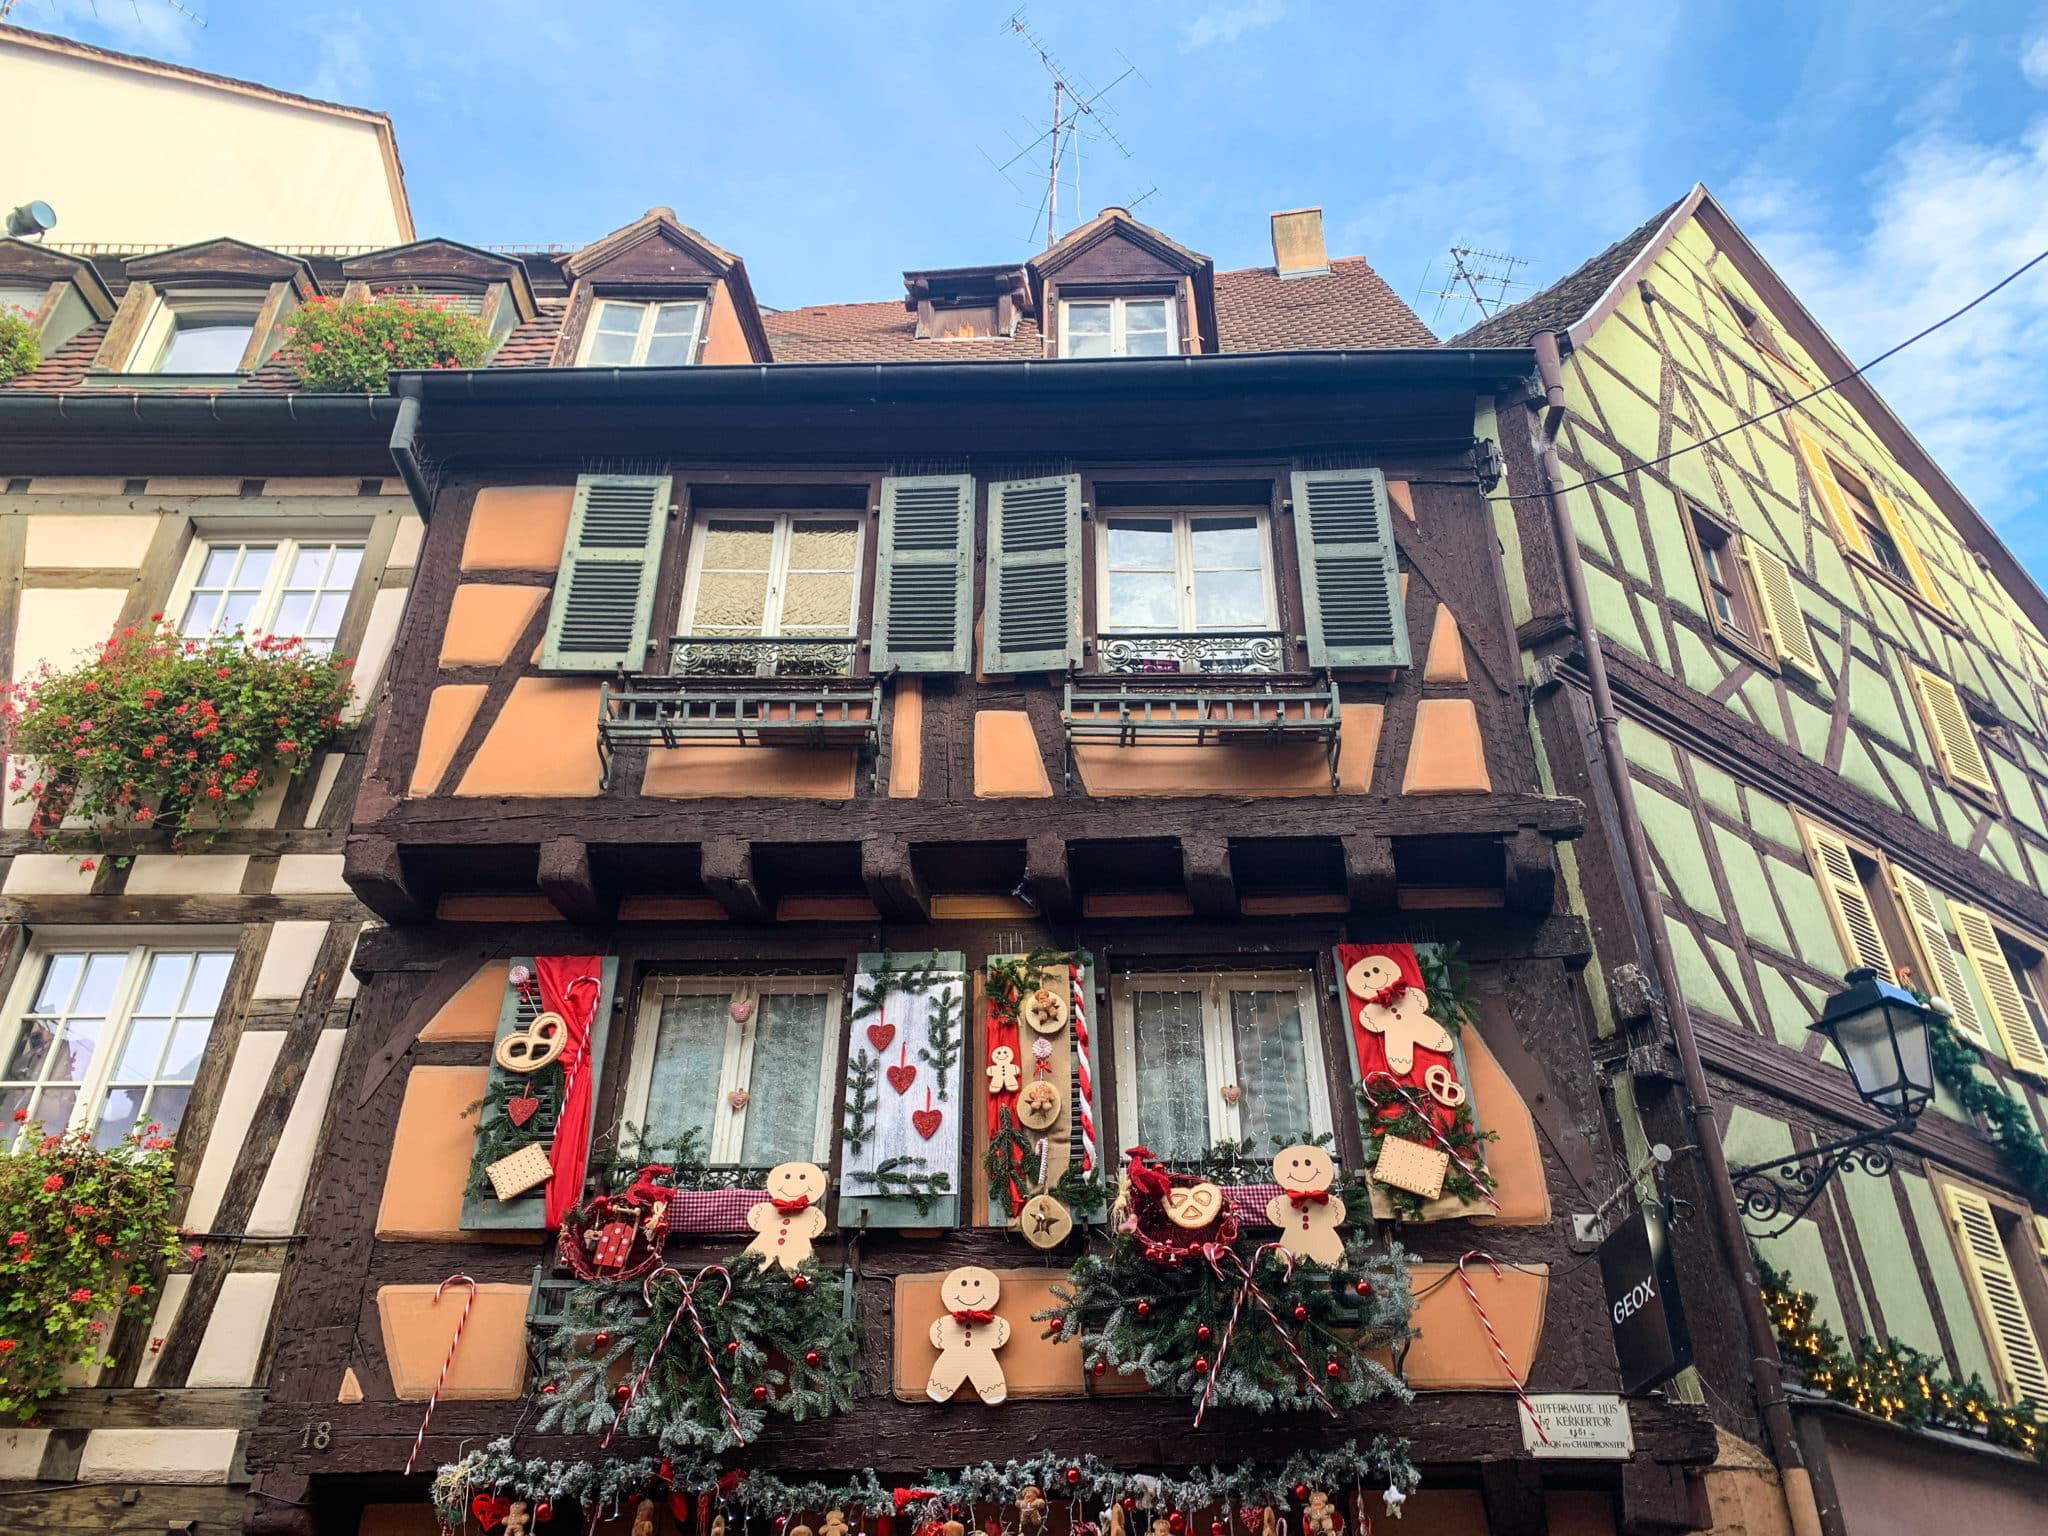 Gingerbread decorated house in Colmar, France